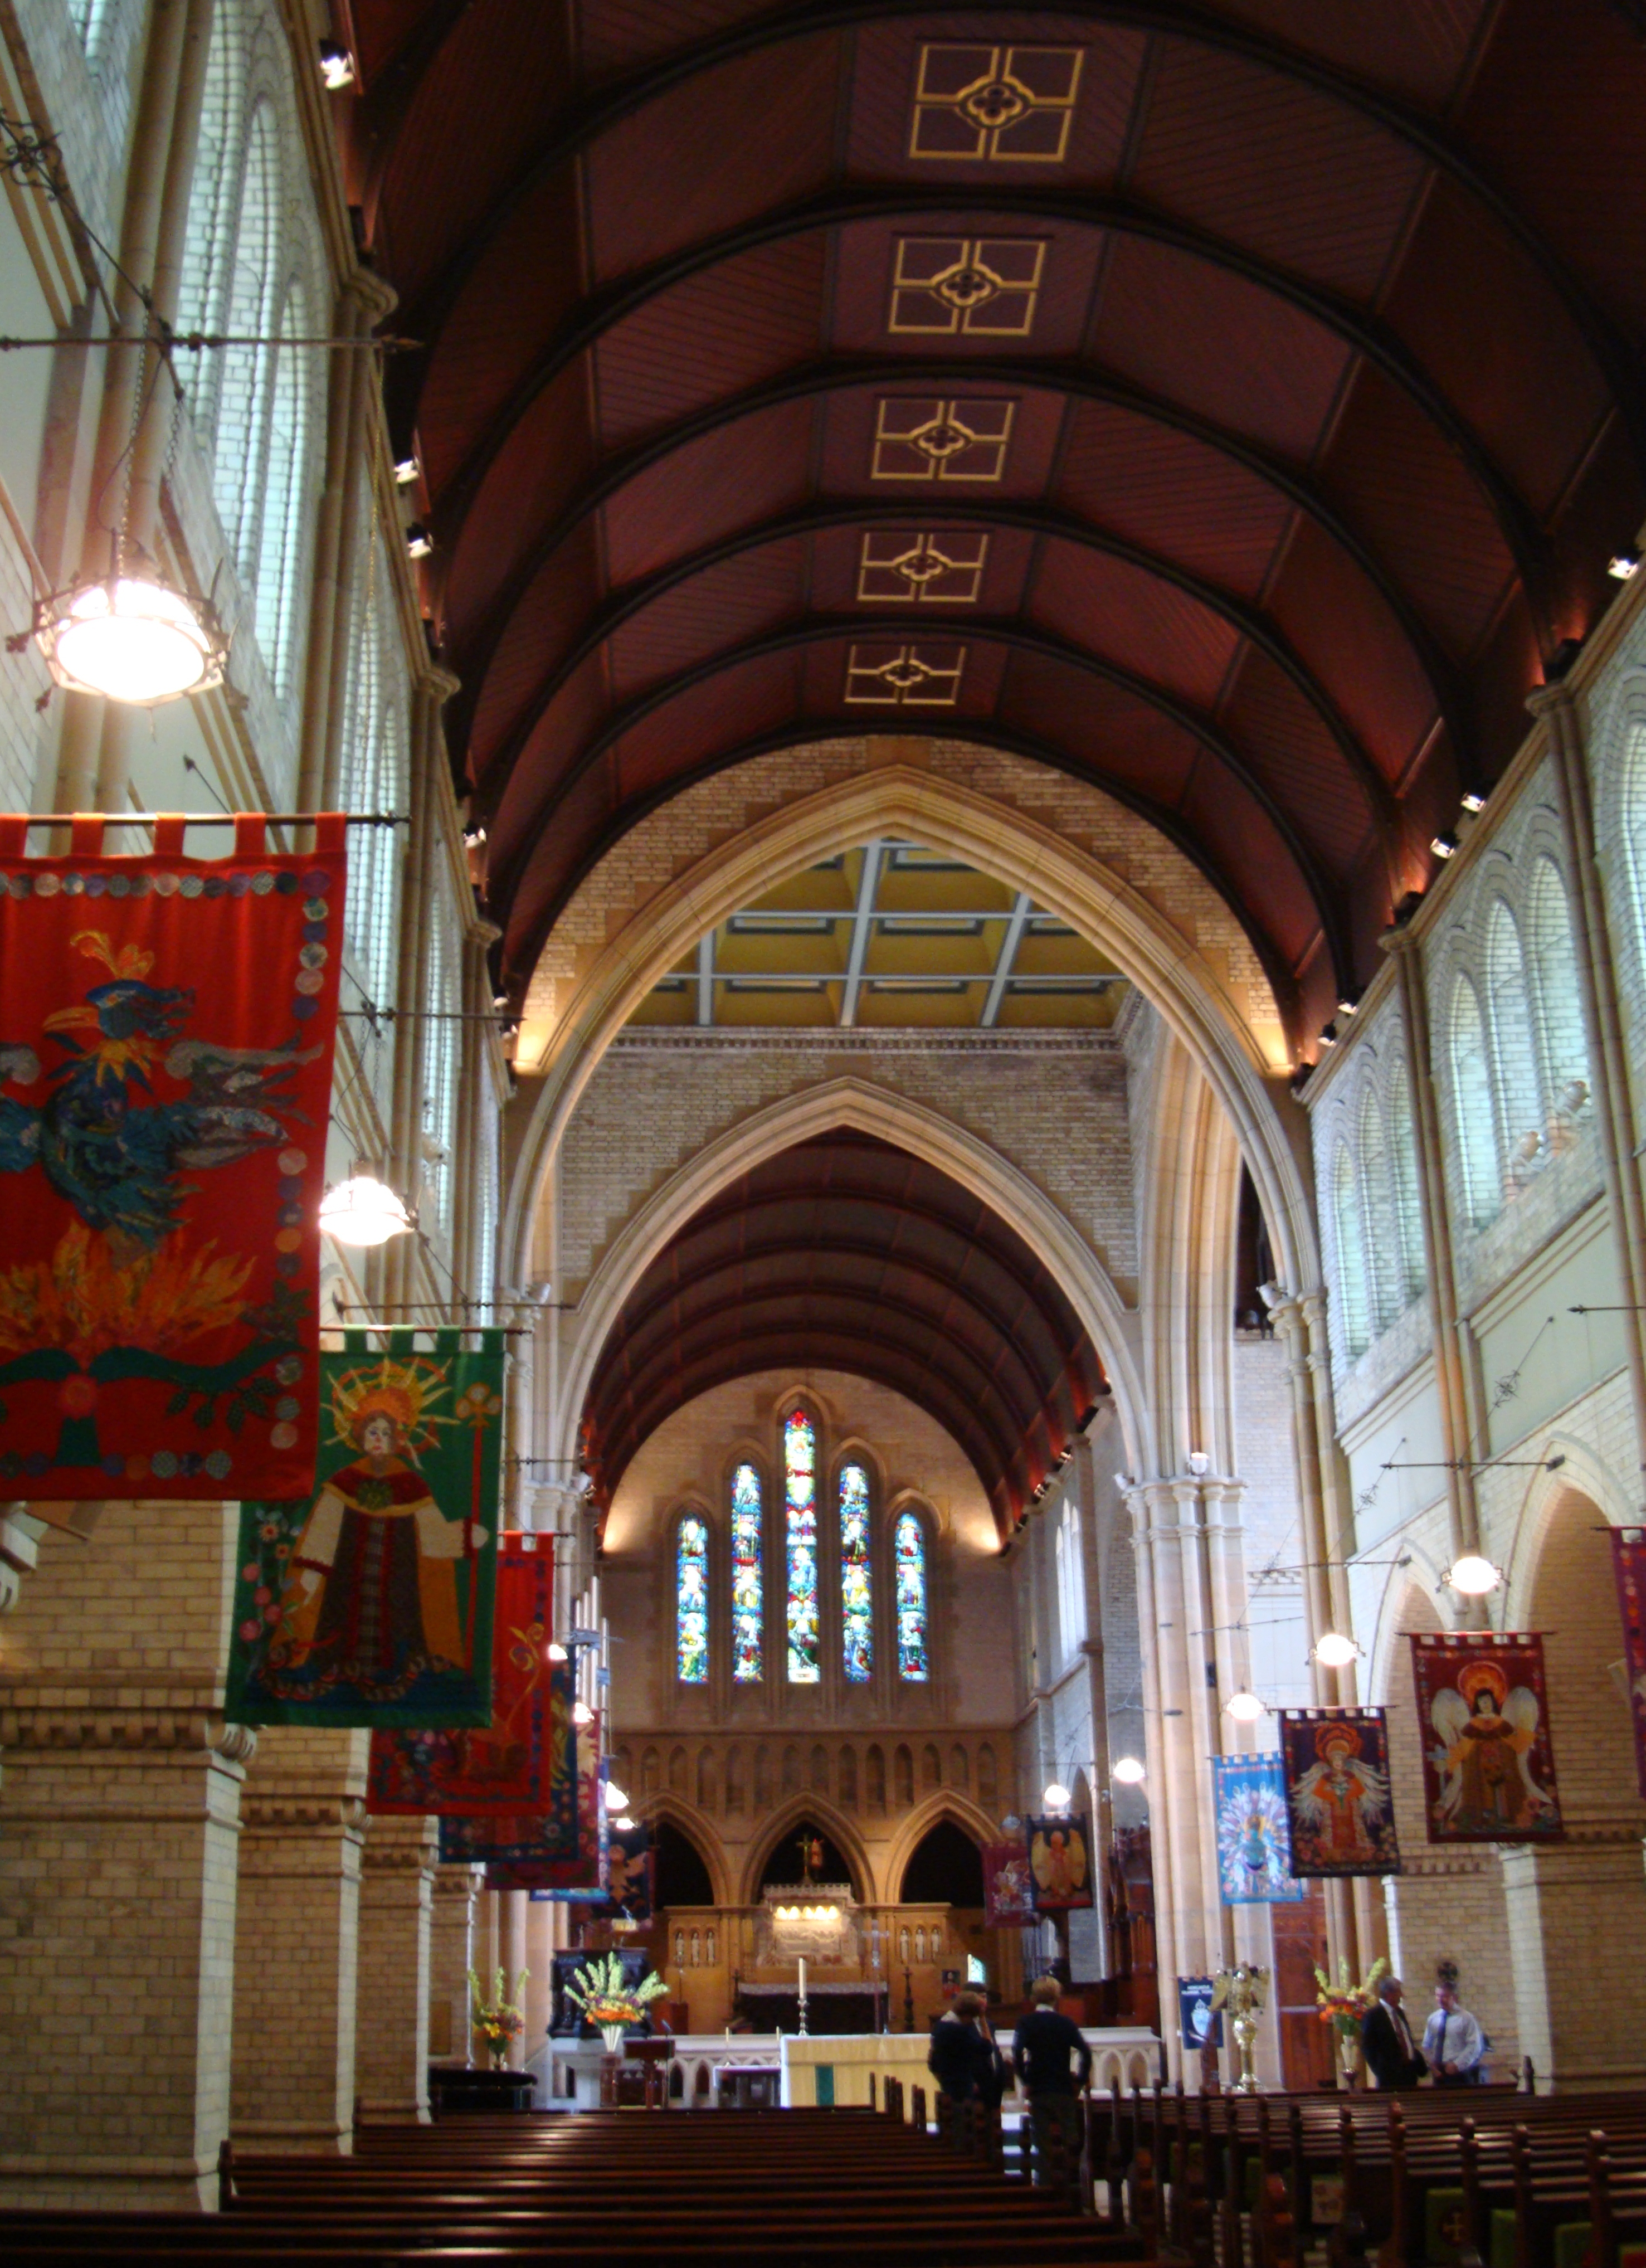 FileNewcastleNSW ChristChurchCathedral InteriorJPG Wikimedia Commons